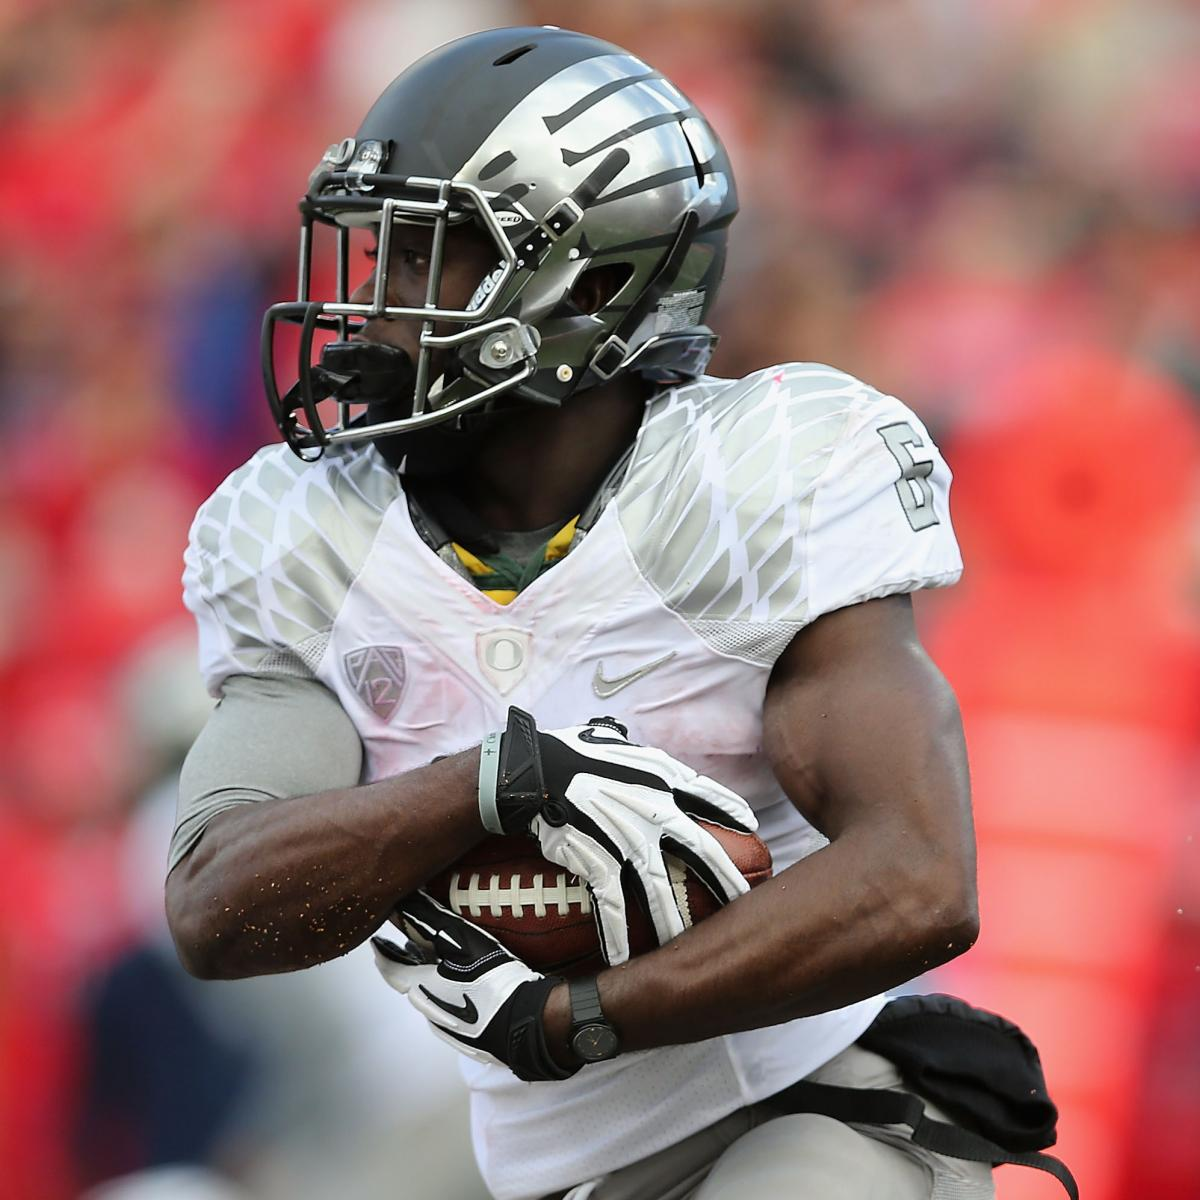 subs deanthony thomas - HD1200×1200